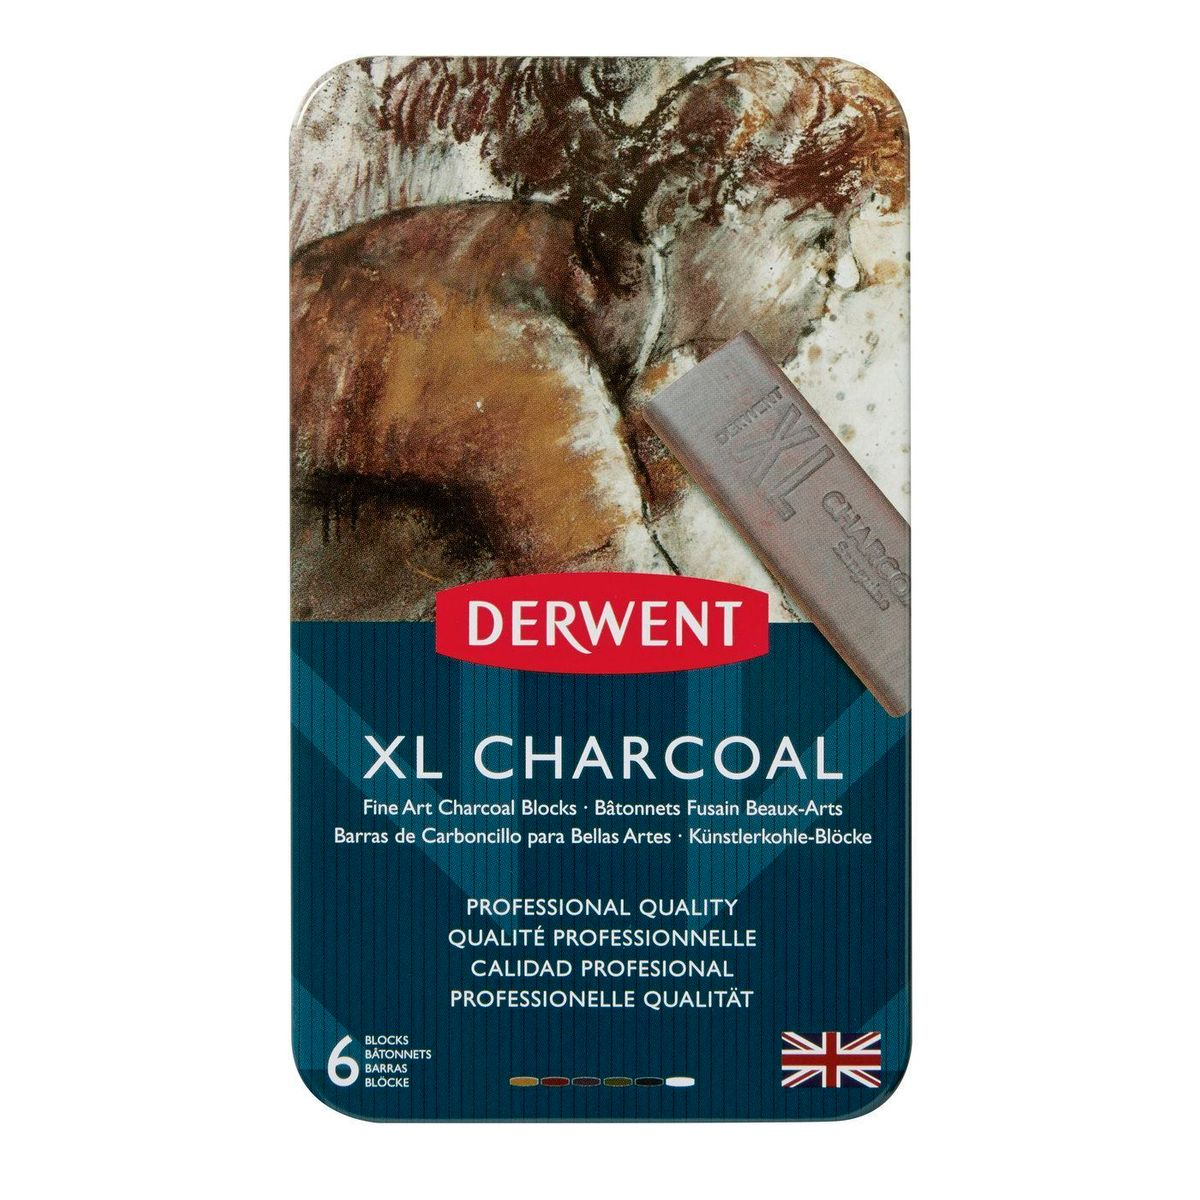 Kit Derwent Xl Charcoal C/ 6 Cores